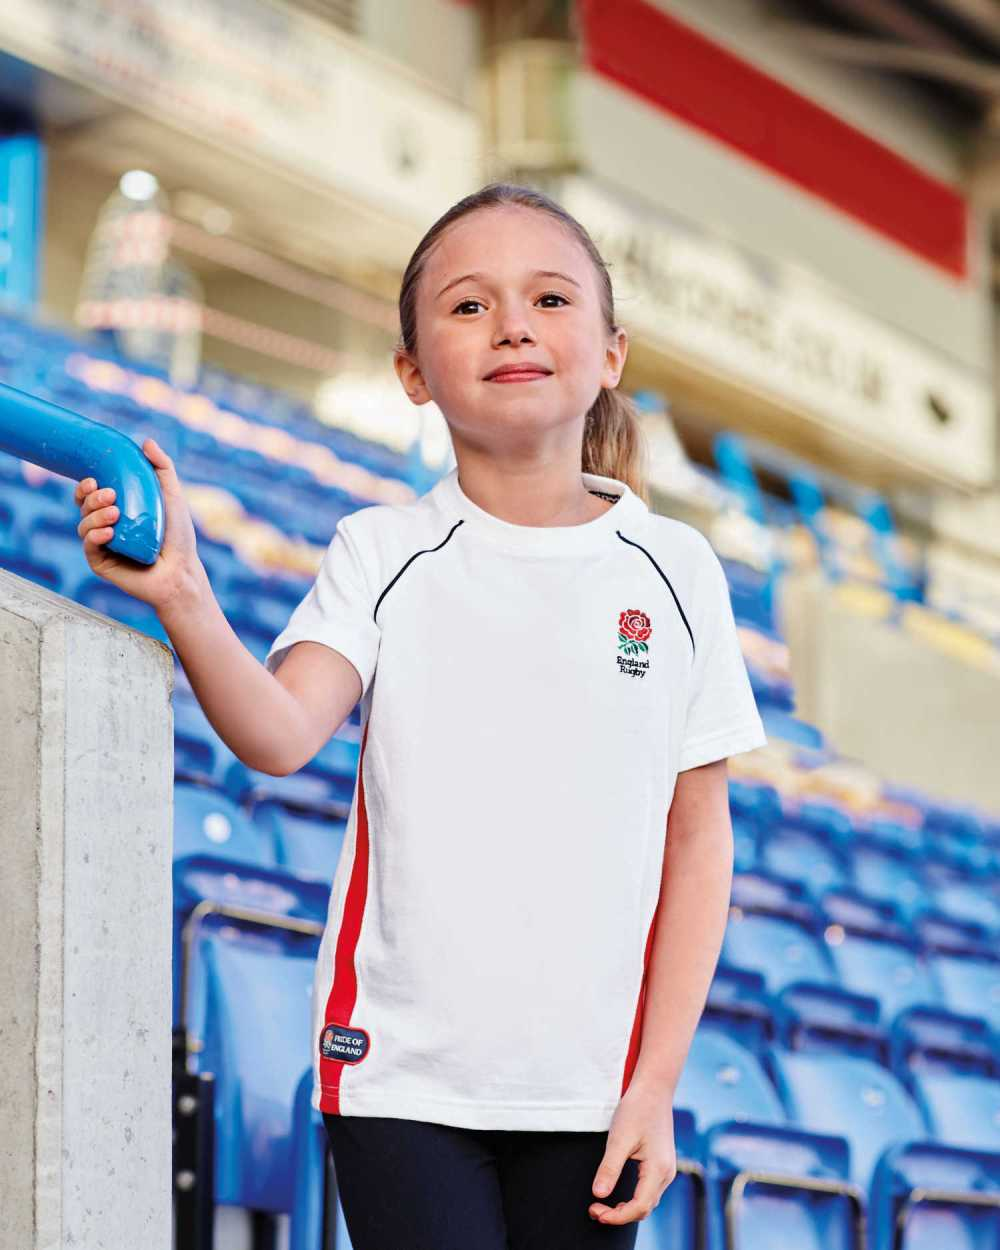 Lucia Morley - Children's-Rugby-T-Shirt-England